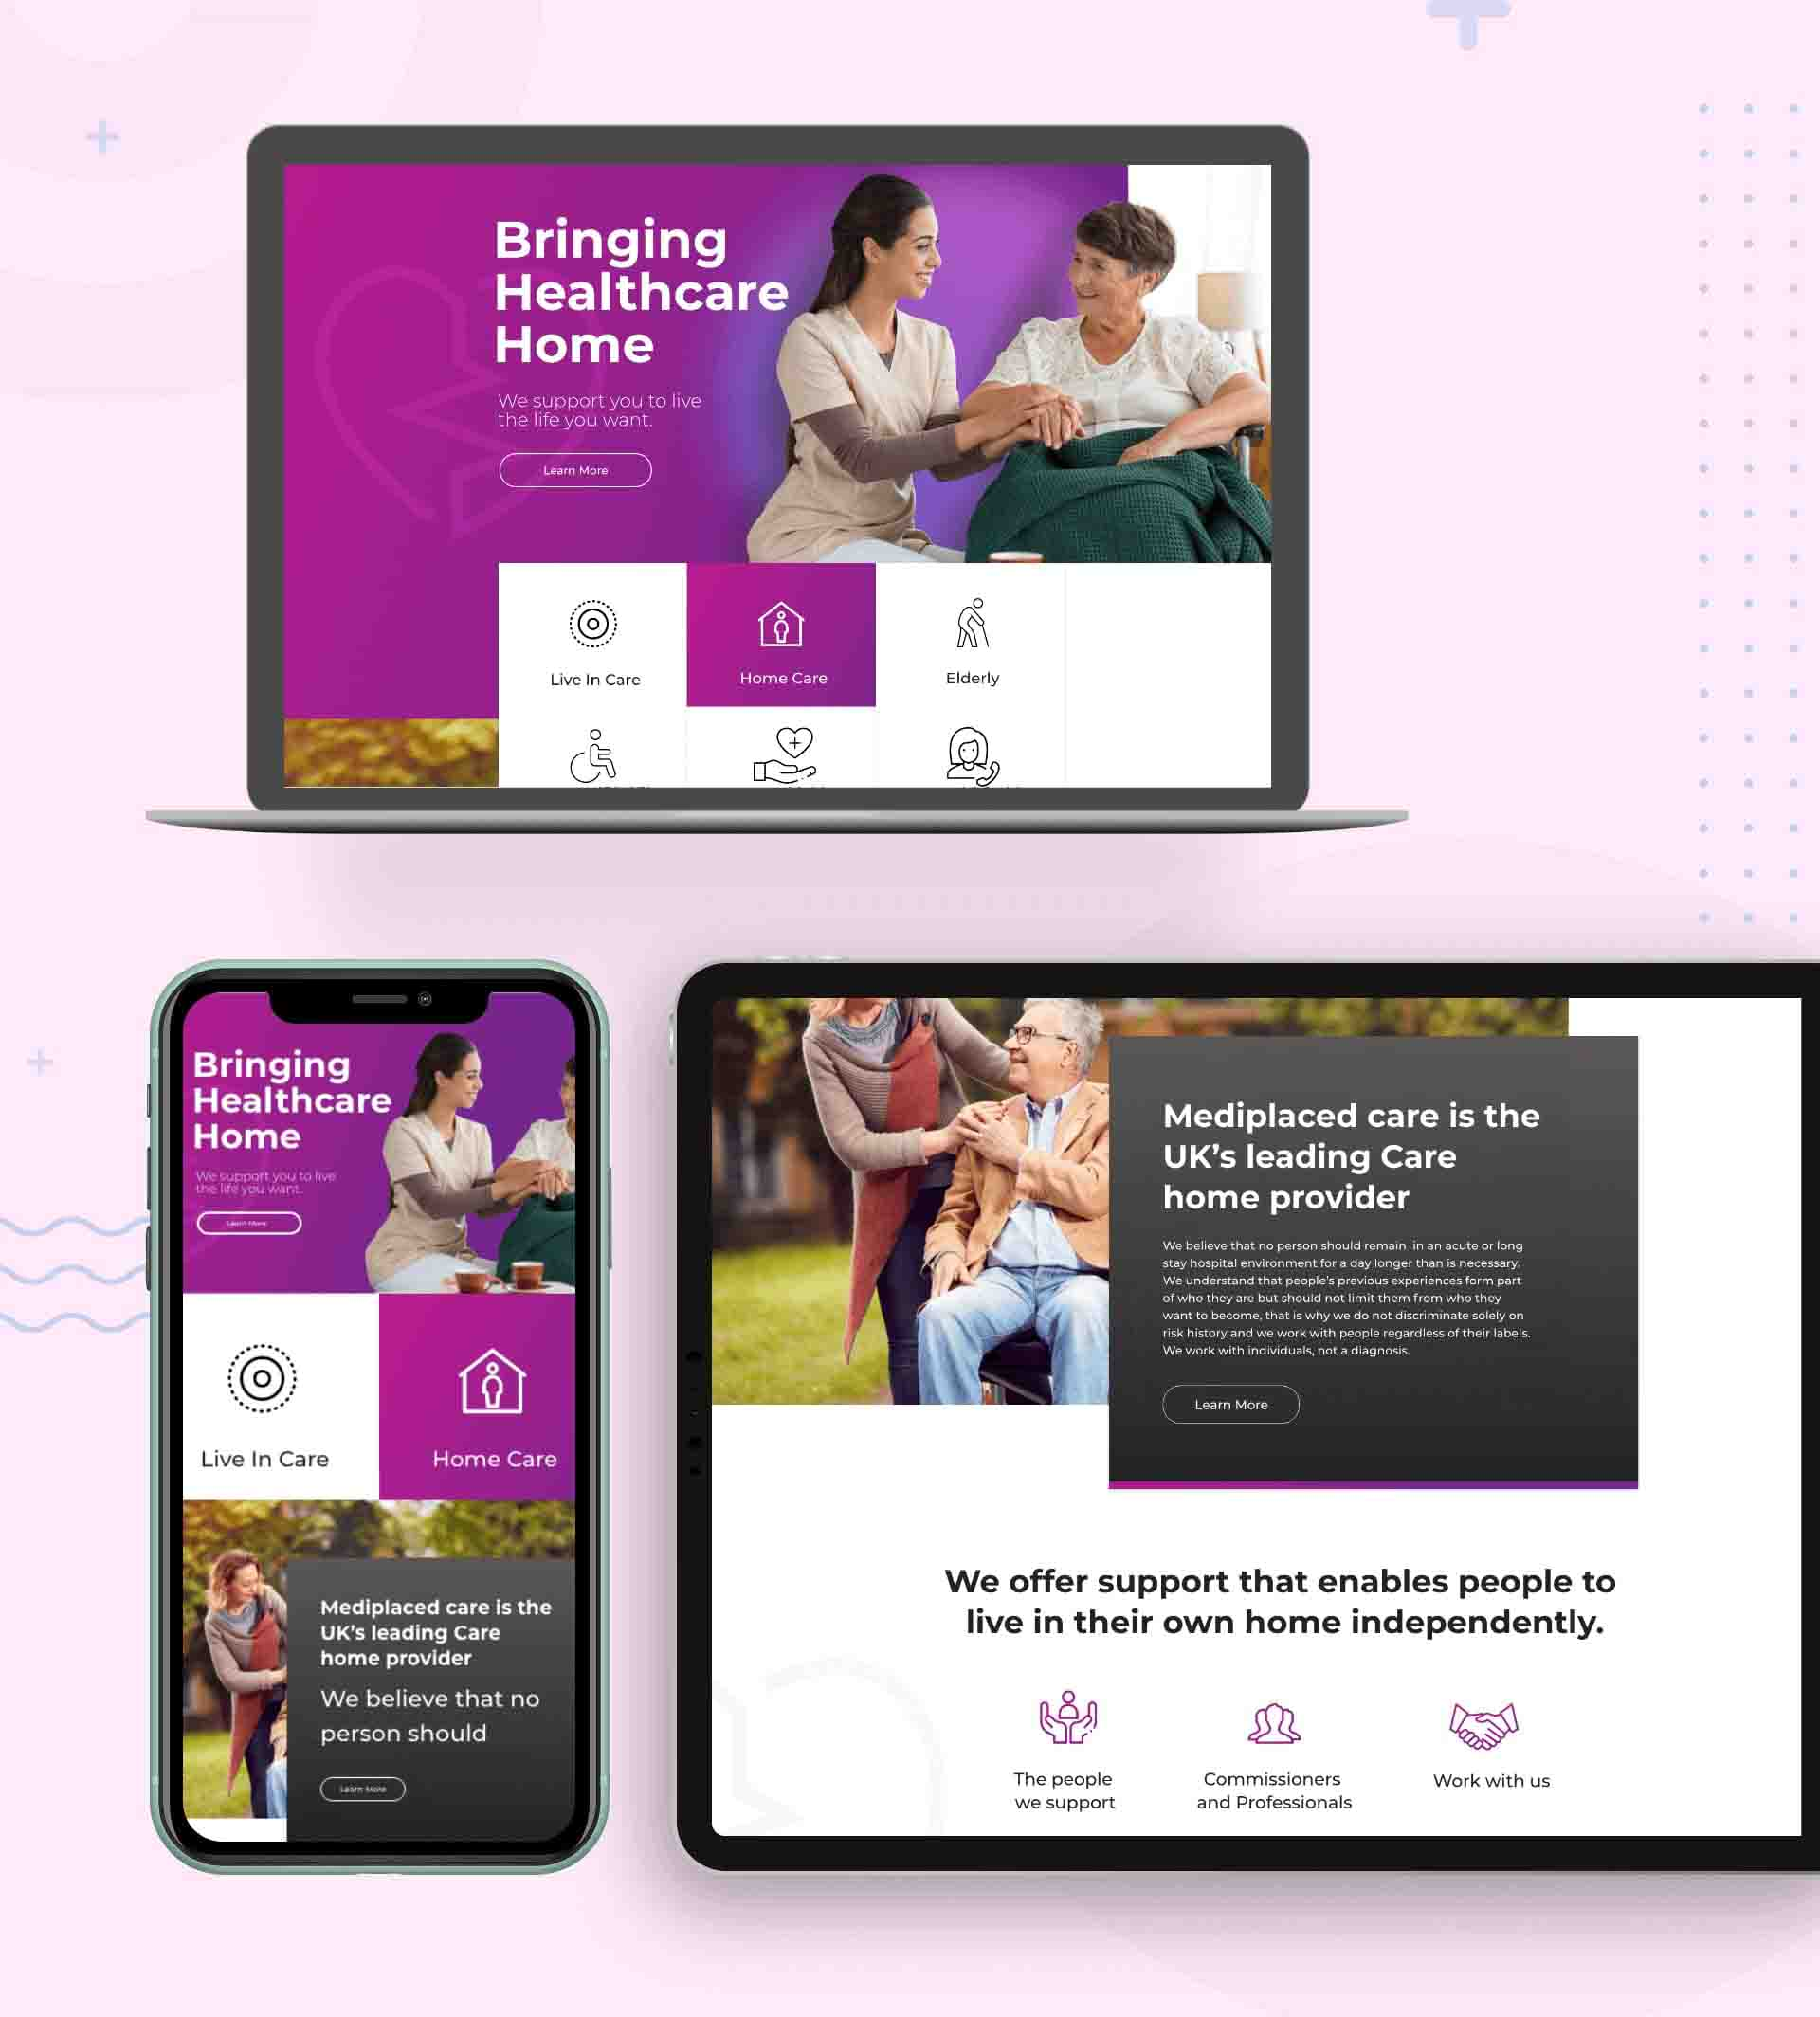 Mediplaced Care